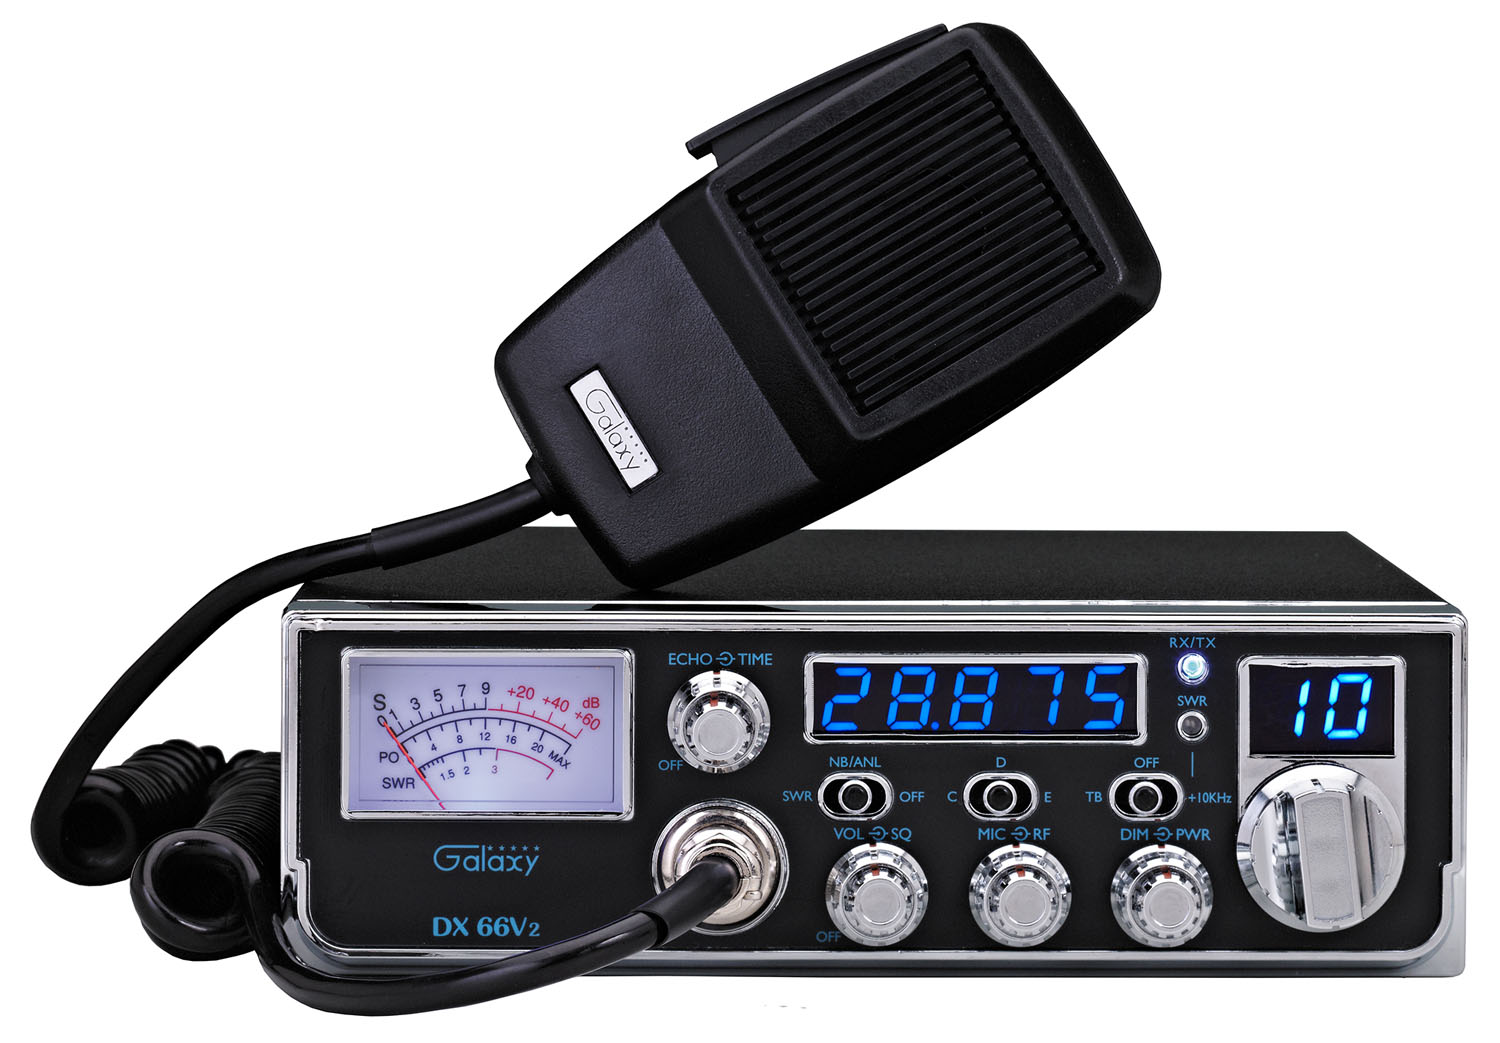 DX66V2 - Galaxy 45 Watt Mid-Size AM 10 Meter Amateur Ham Radio